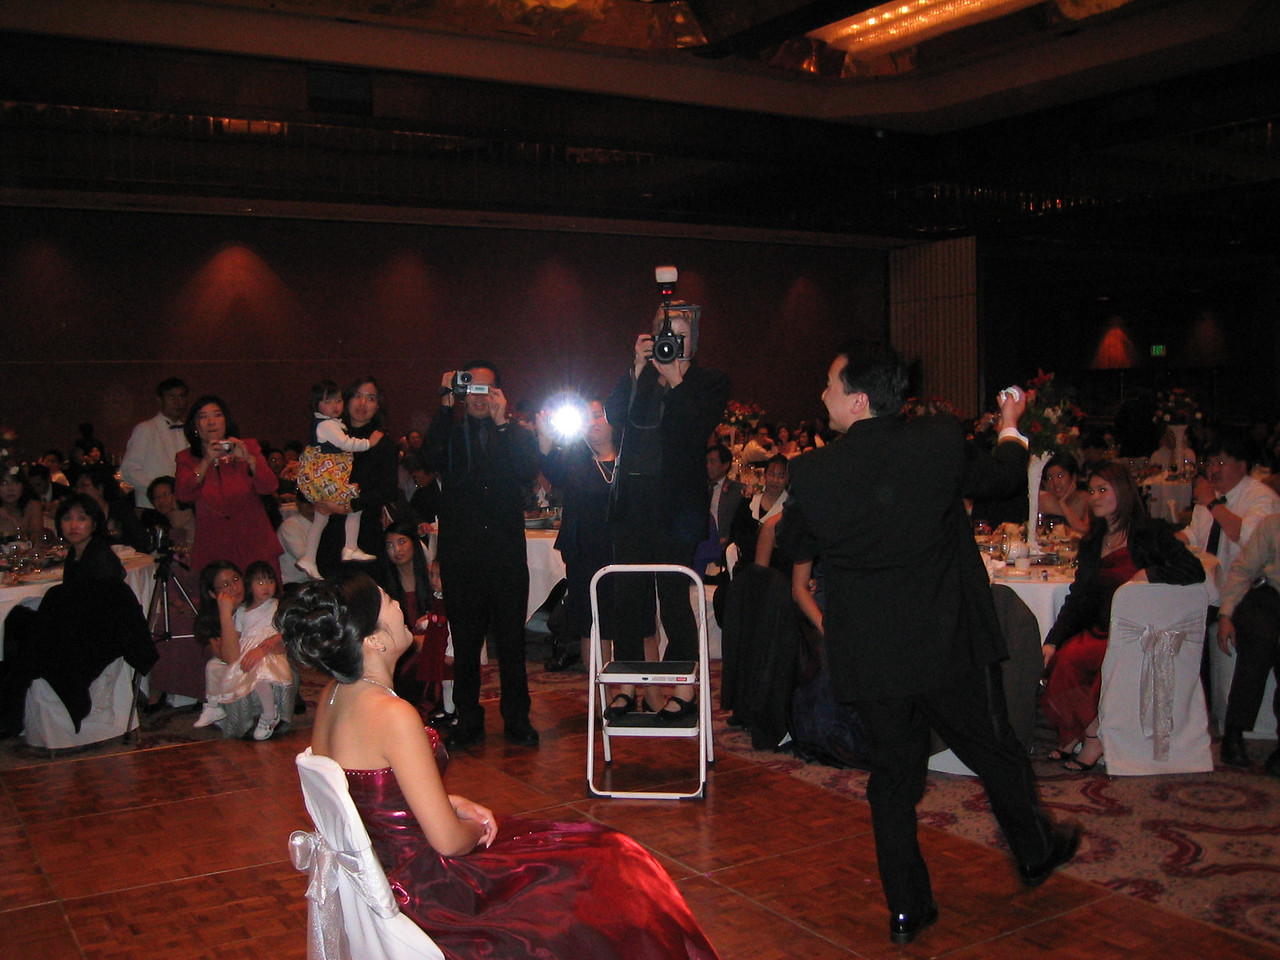 Reception - The garter toss